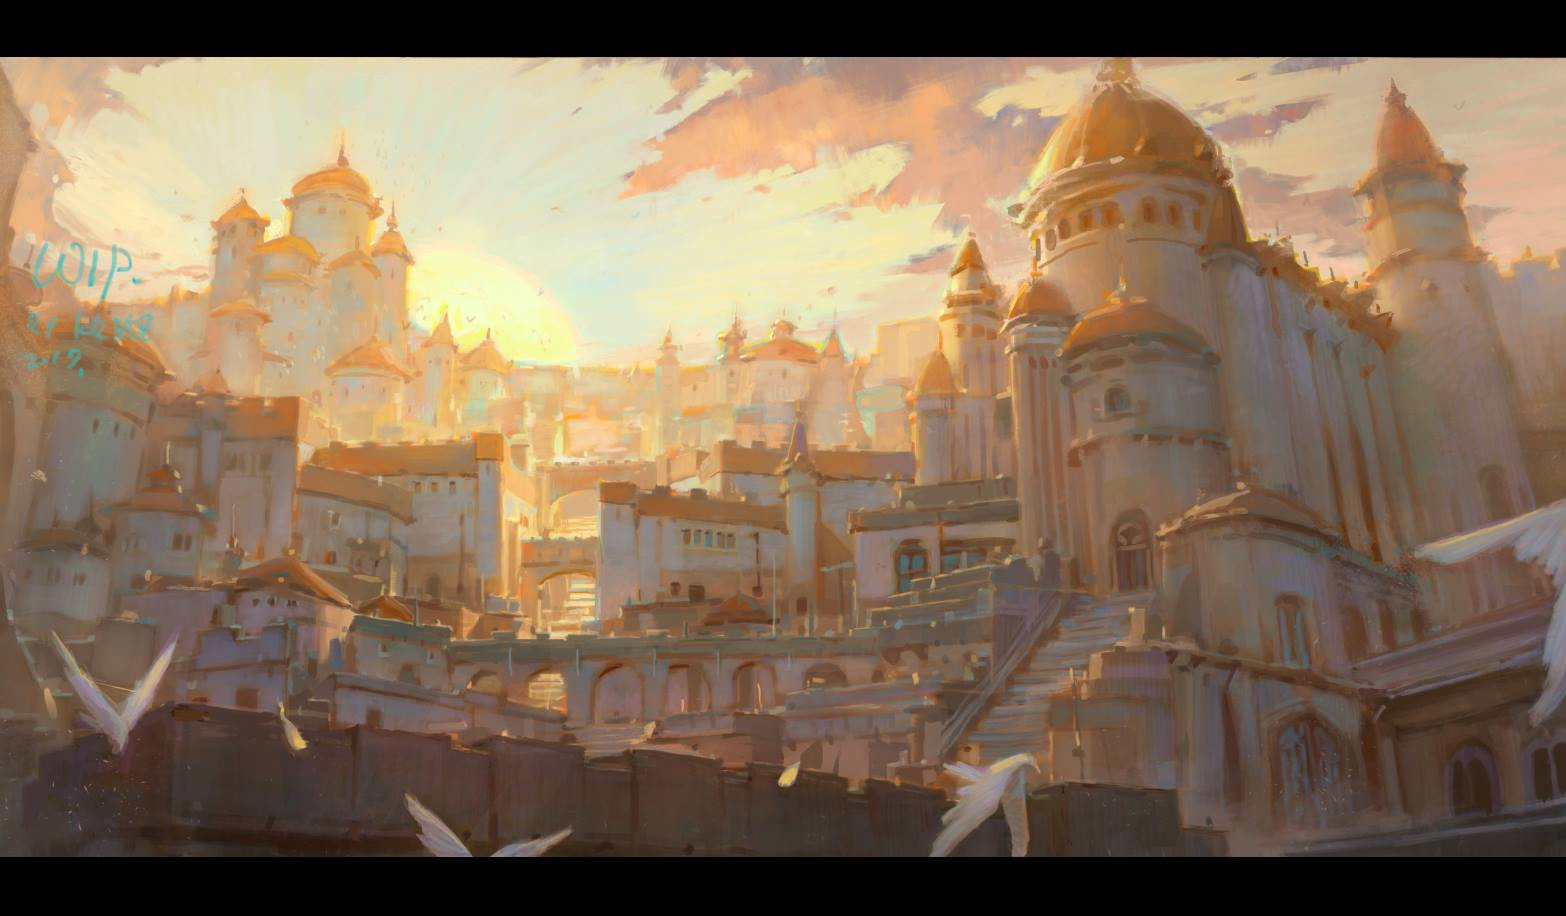 Krenz_Cushart_digital_painting_illustration_city_environment